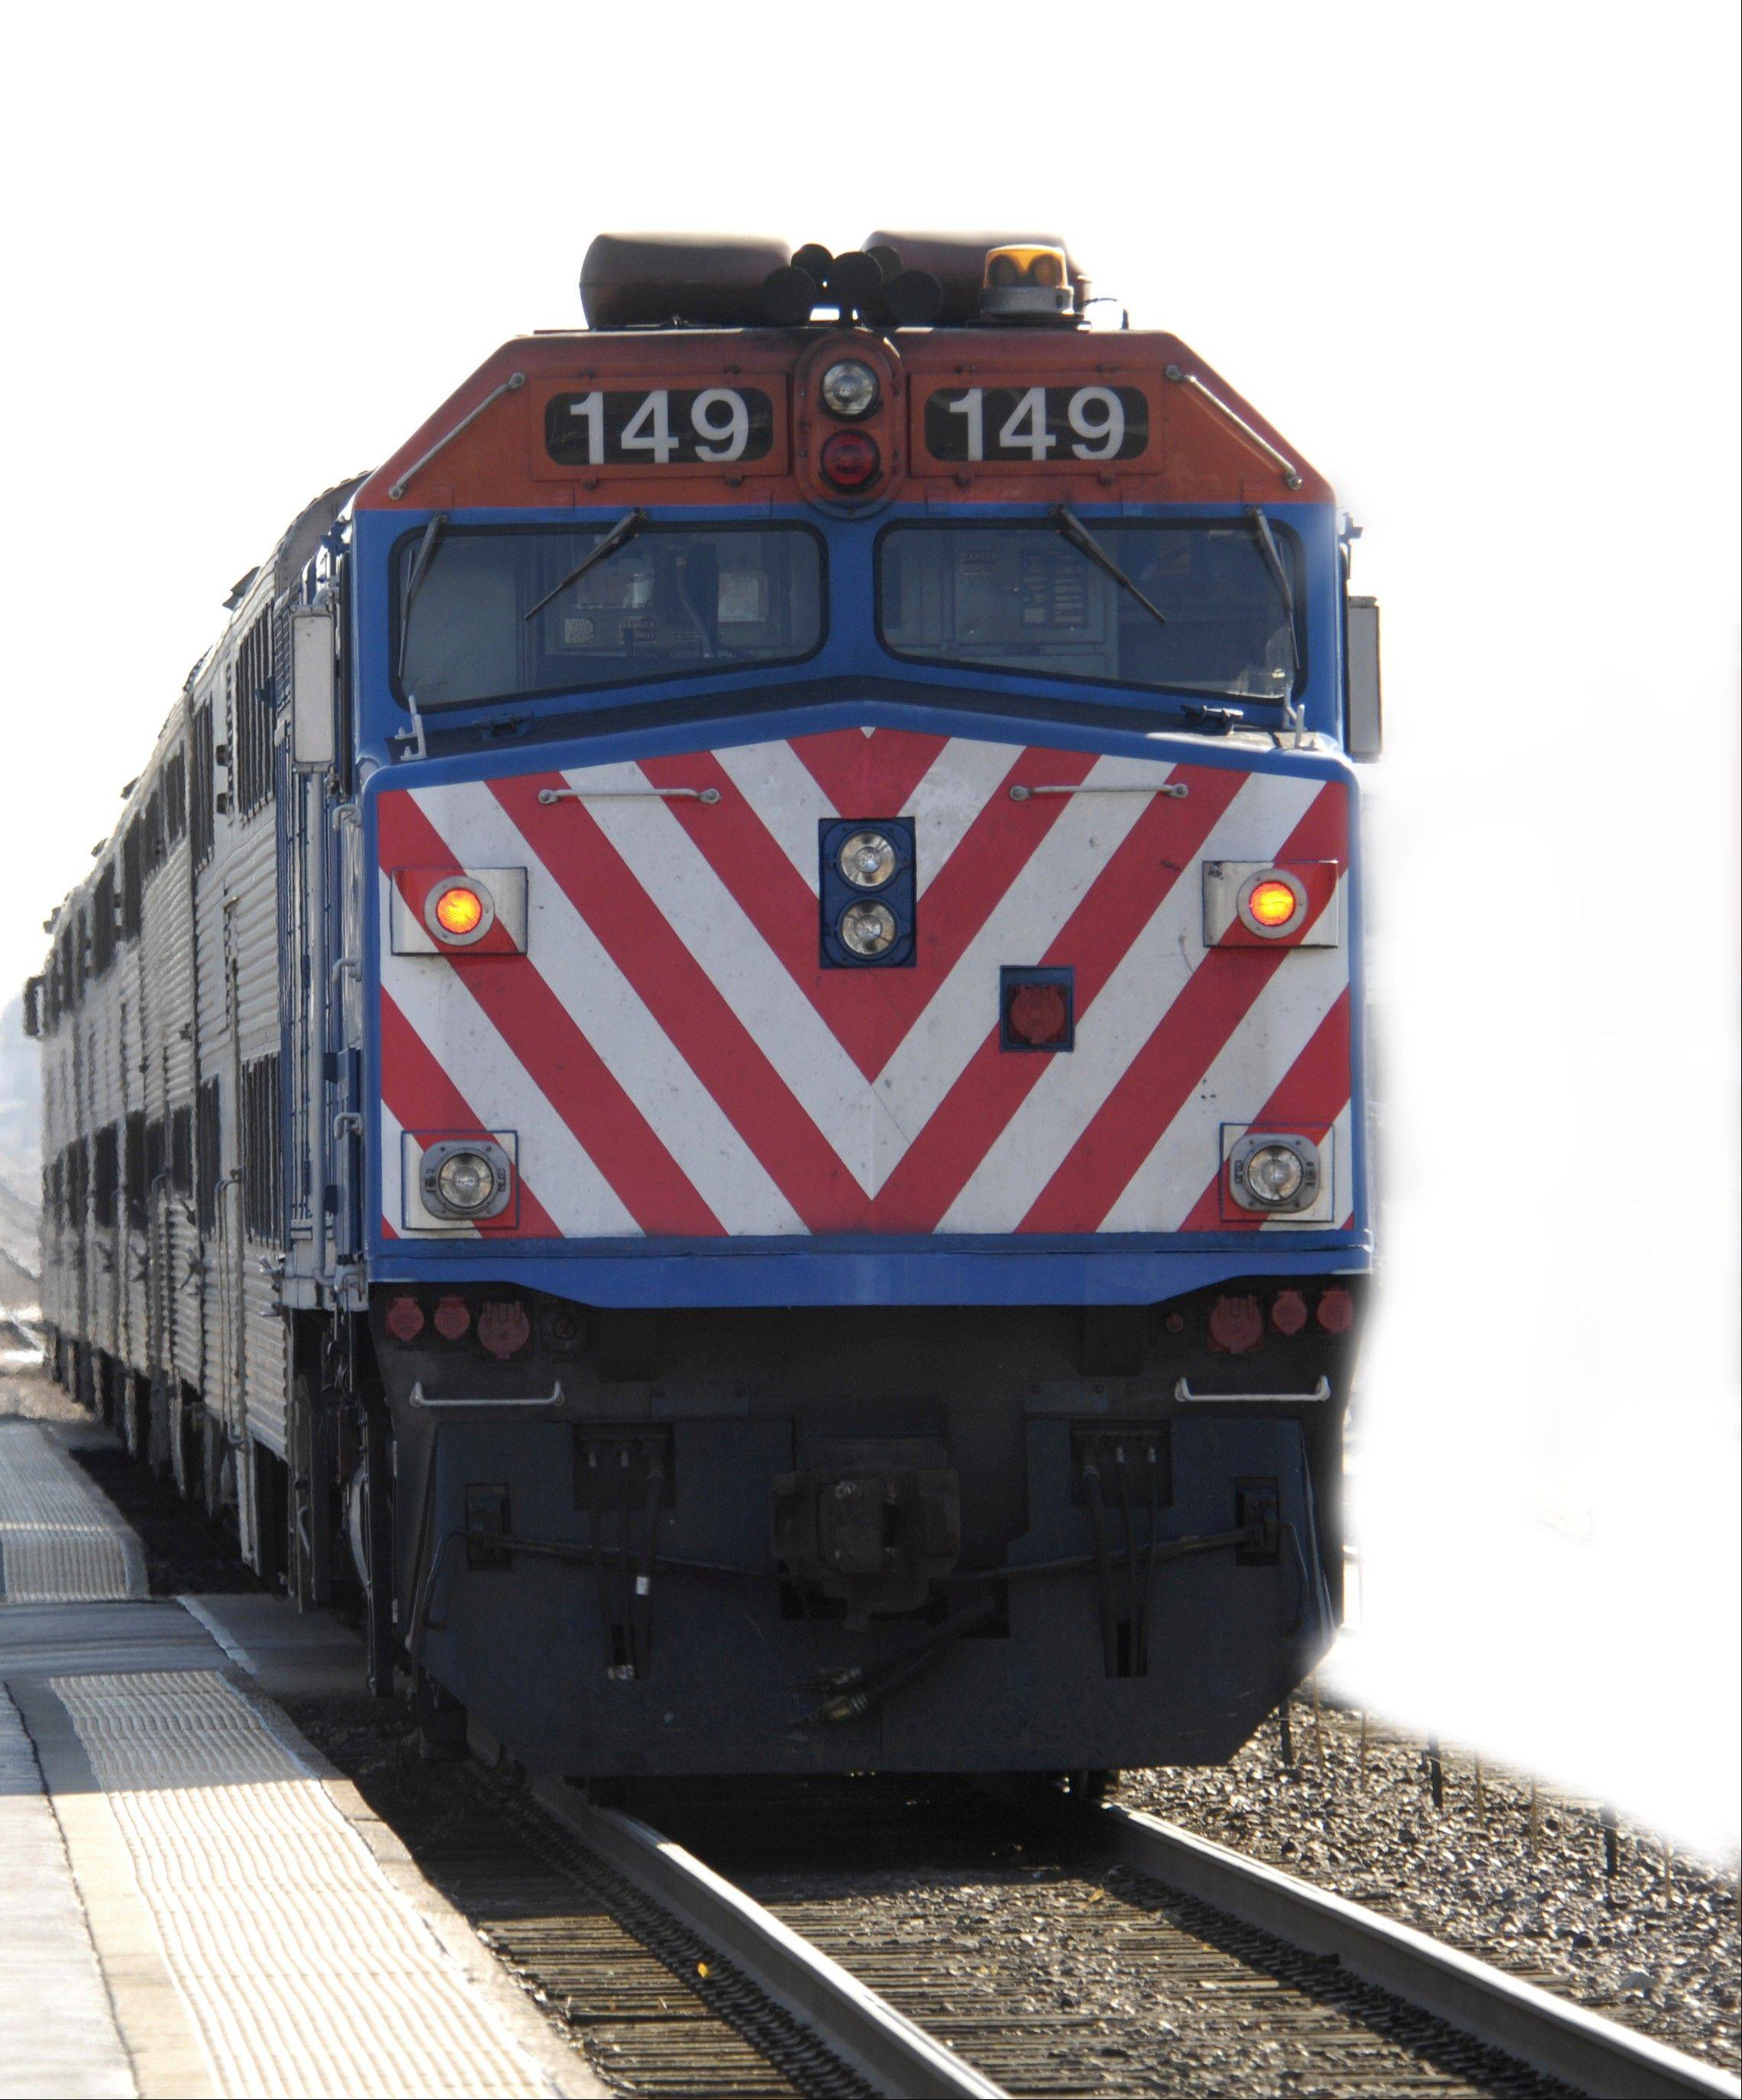 Free Wi-Fi on Metra trains may not be possible, officials said.